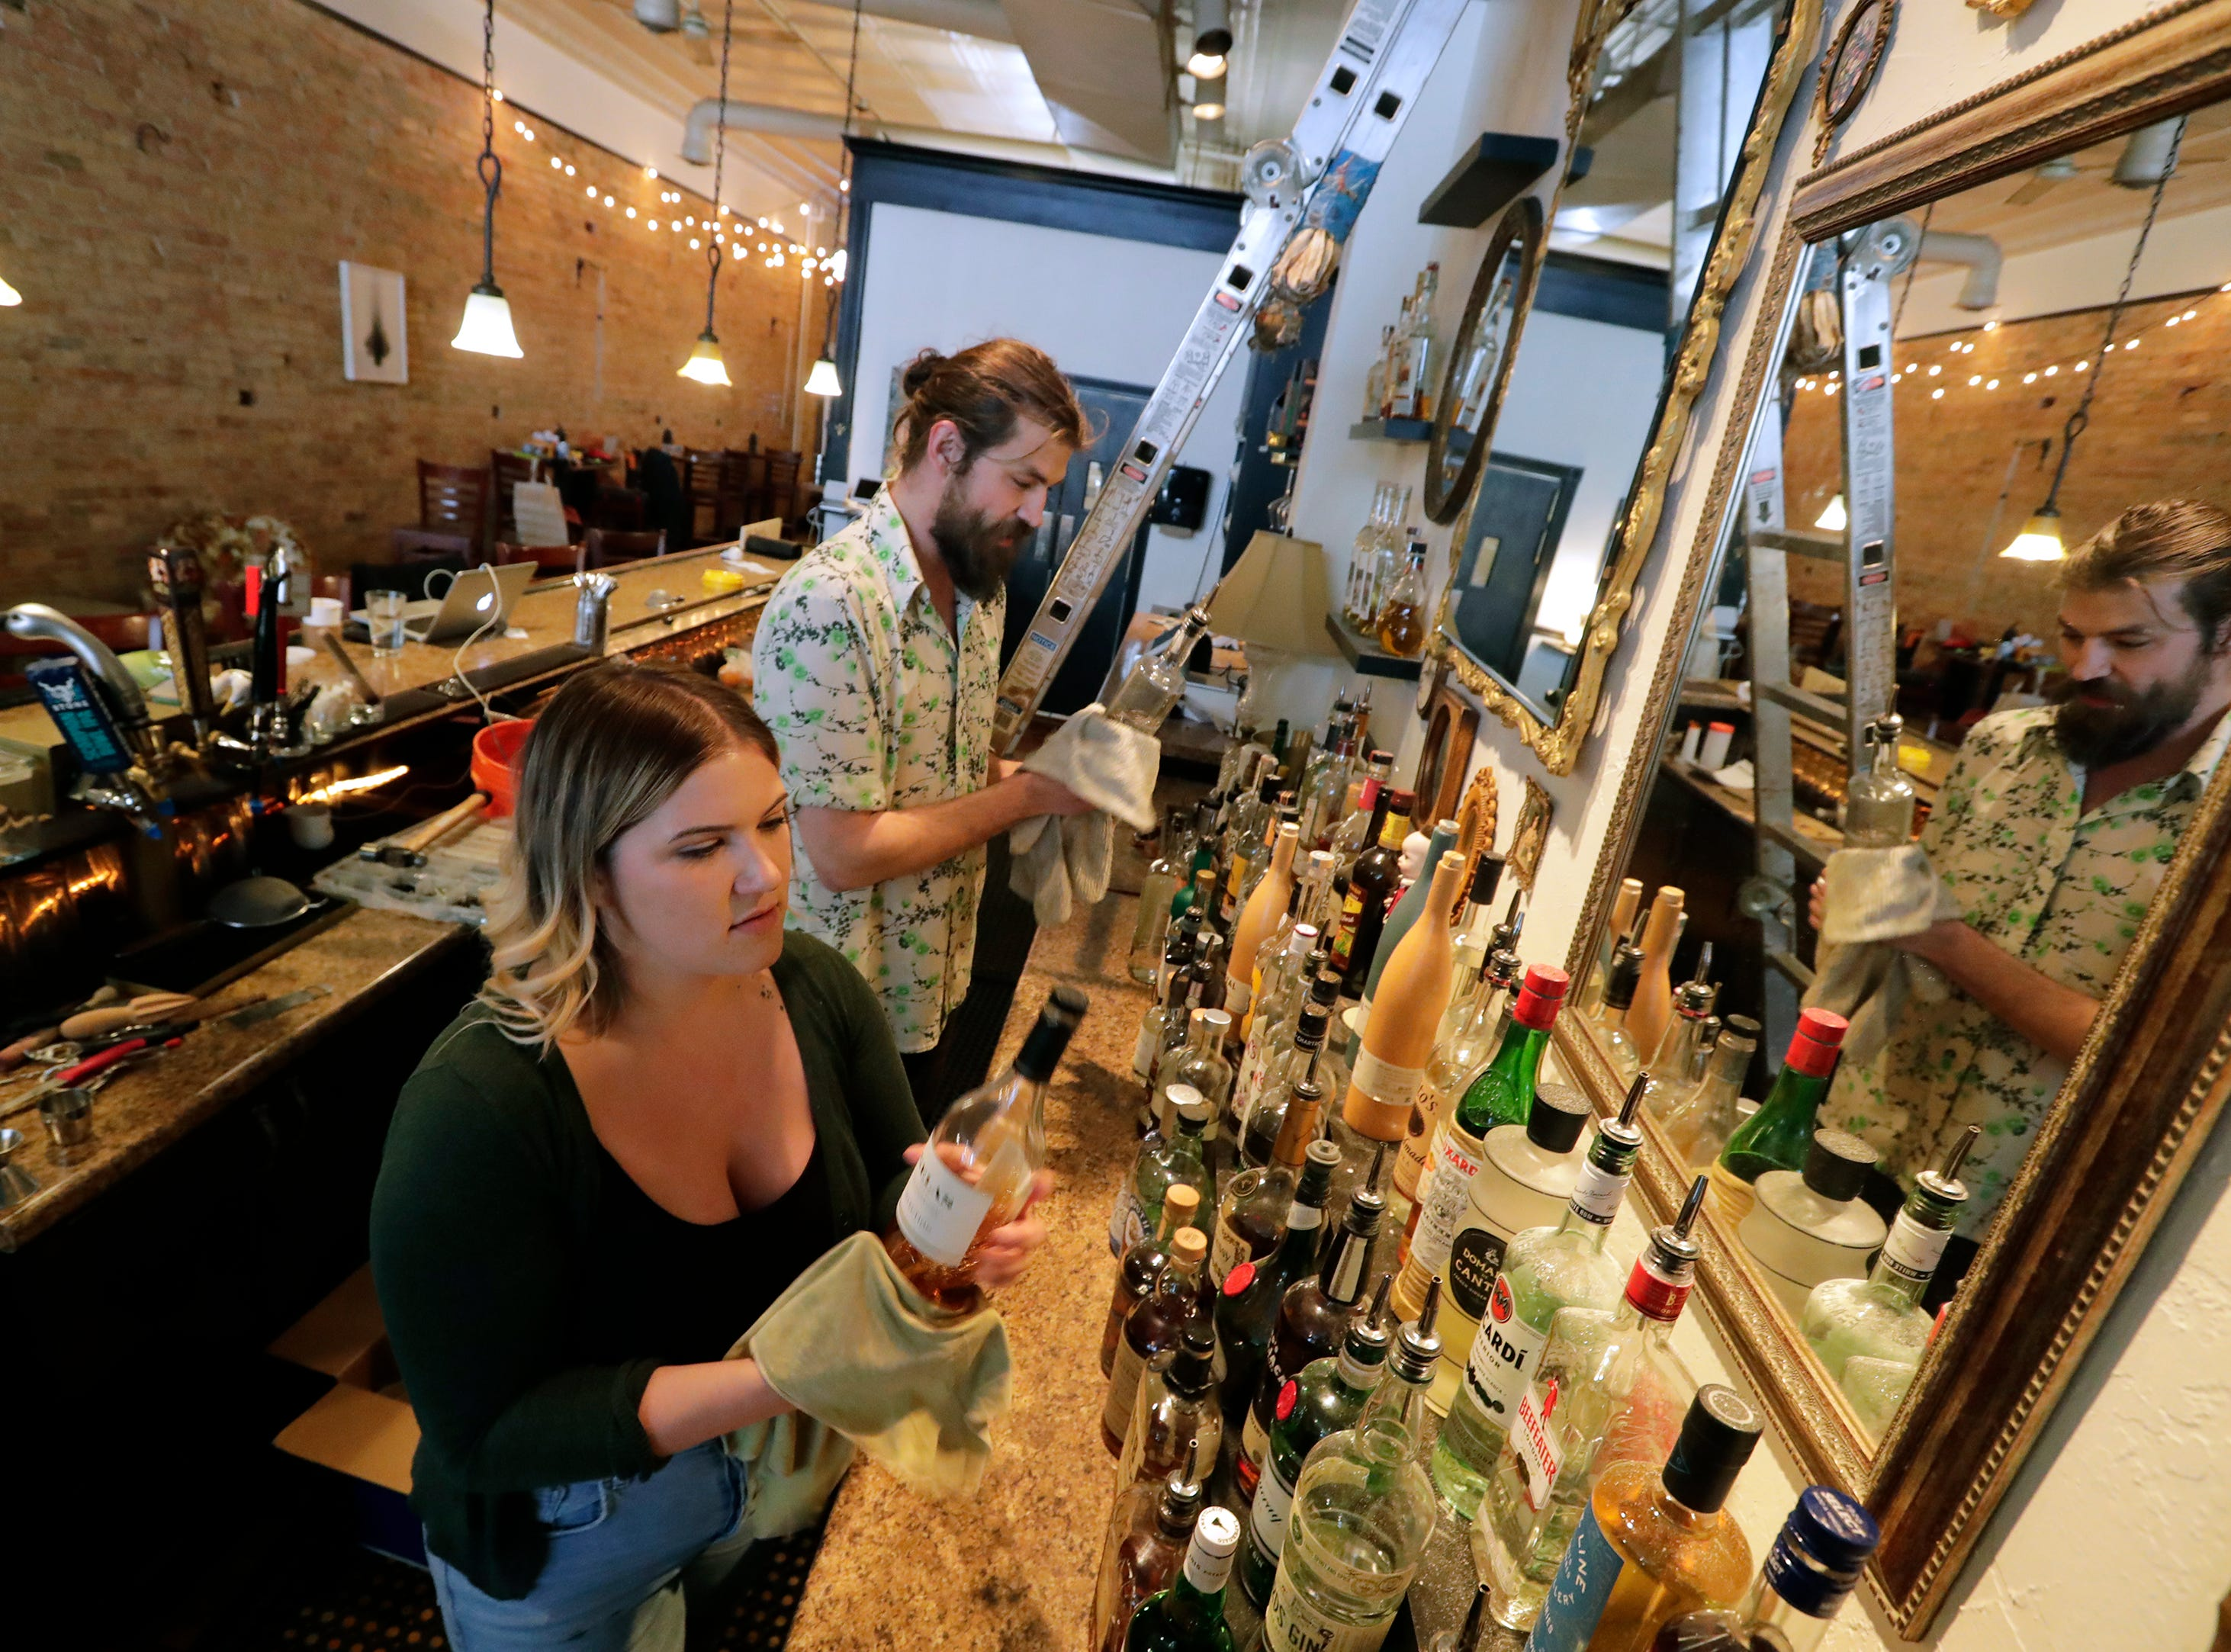 Proprietors Margot Reed, left, and Christopher Fenn clean and arrange the bar at Nice Time located at 125 E. College Avenue Friday, April 12, 2019, in downtown Appleton, Wis. Dan Powers/USA TODAY NETWORK-Wisconsin